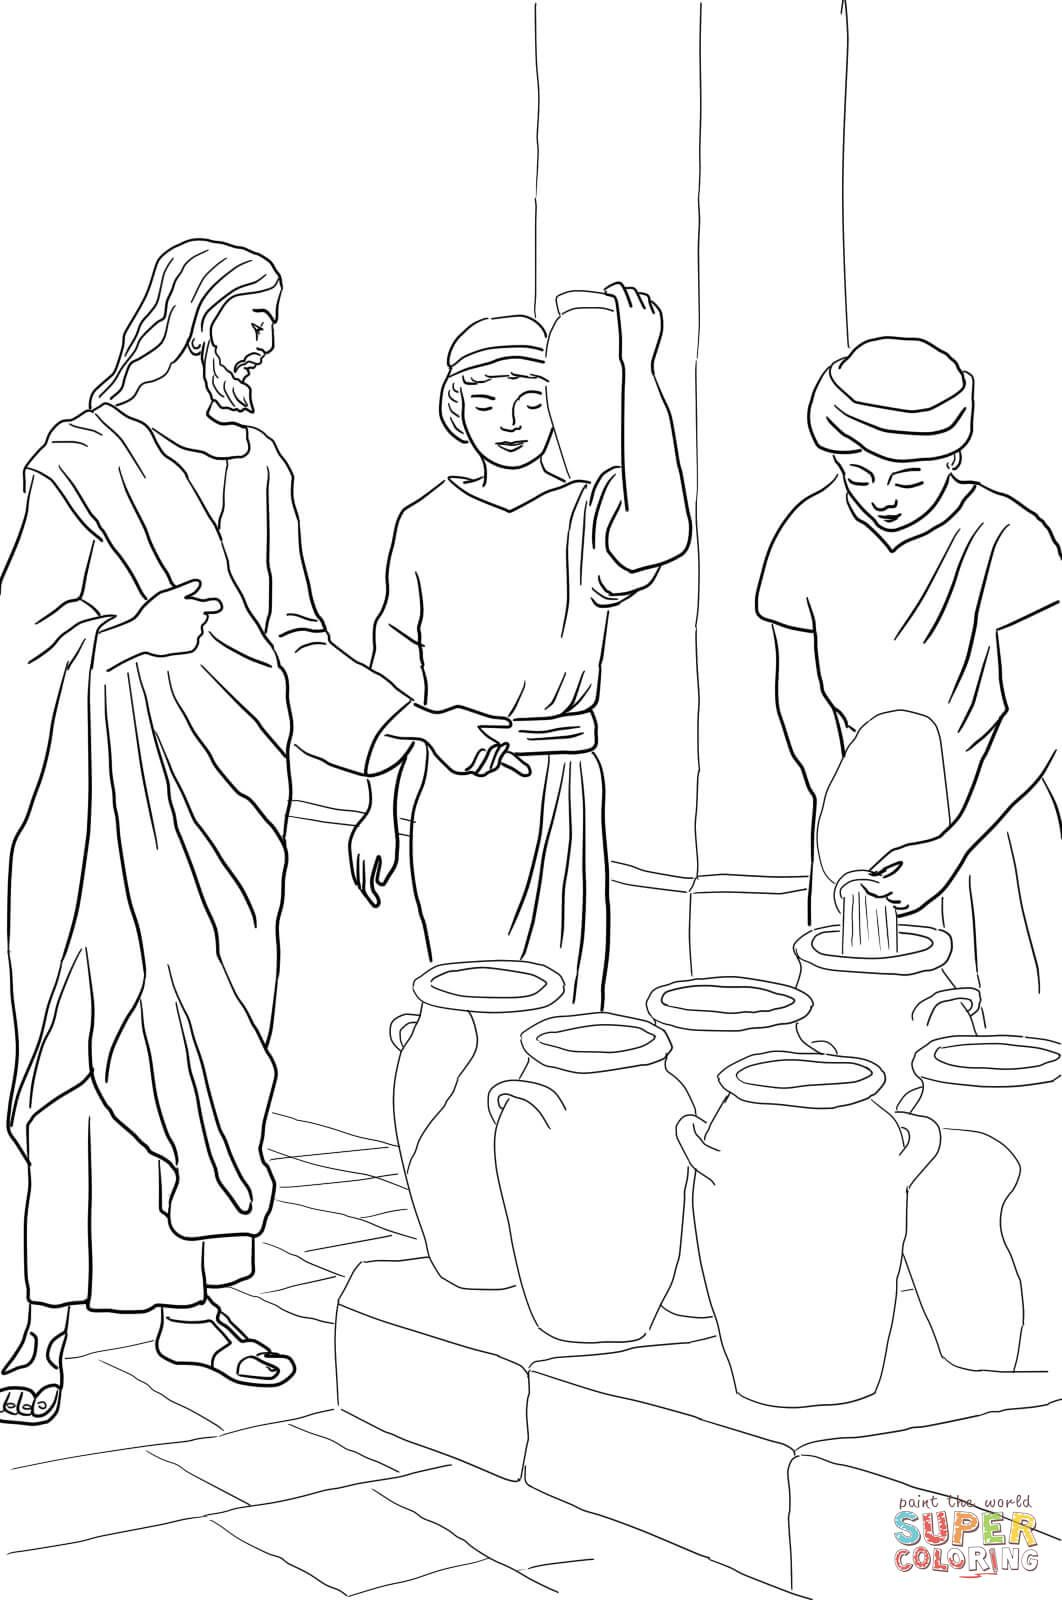 Sacraments Coloring Pages Free Furthermore Worksheet Equivalent